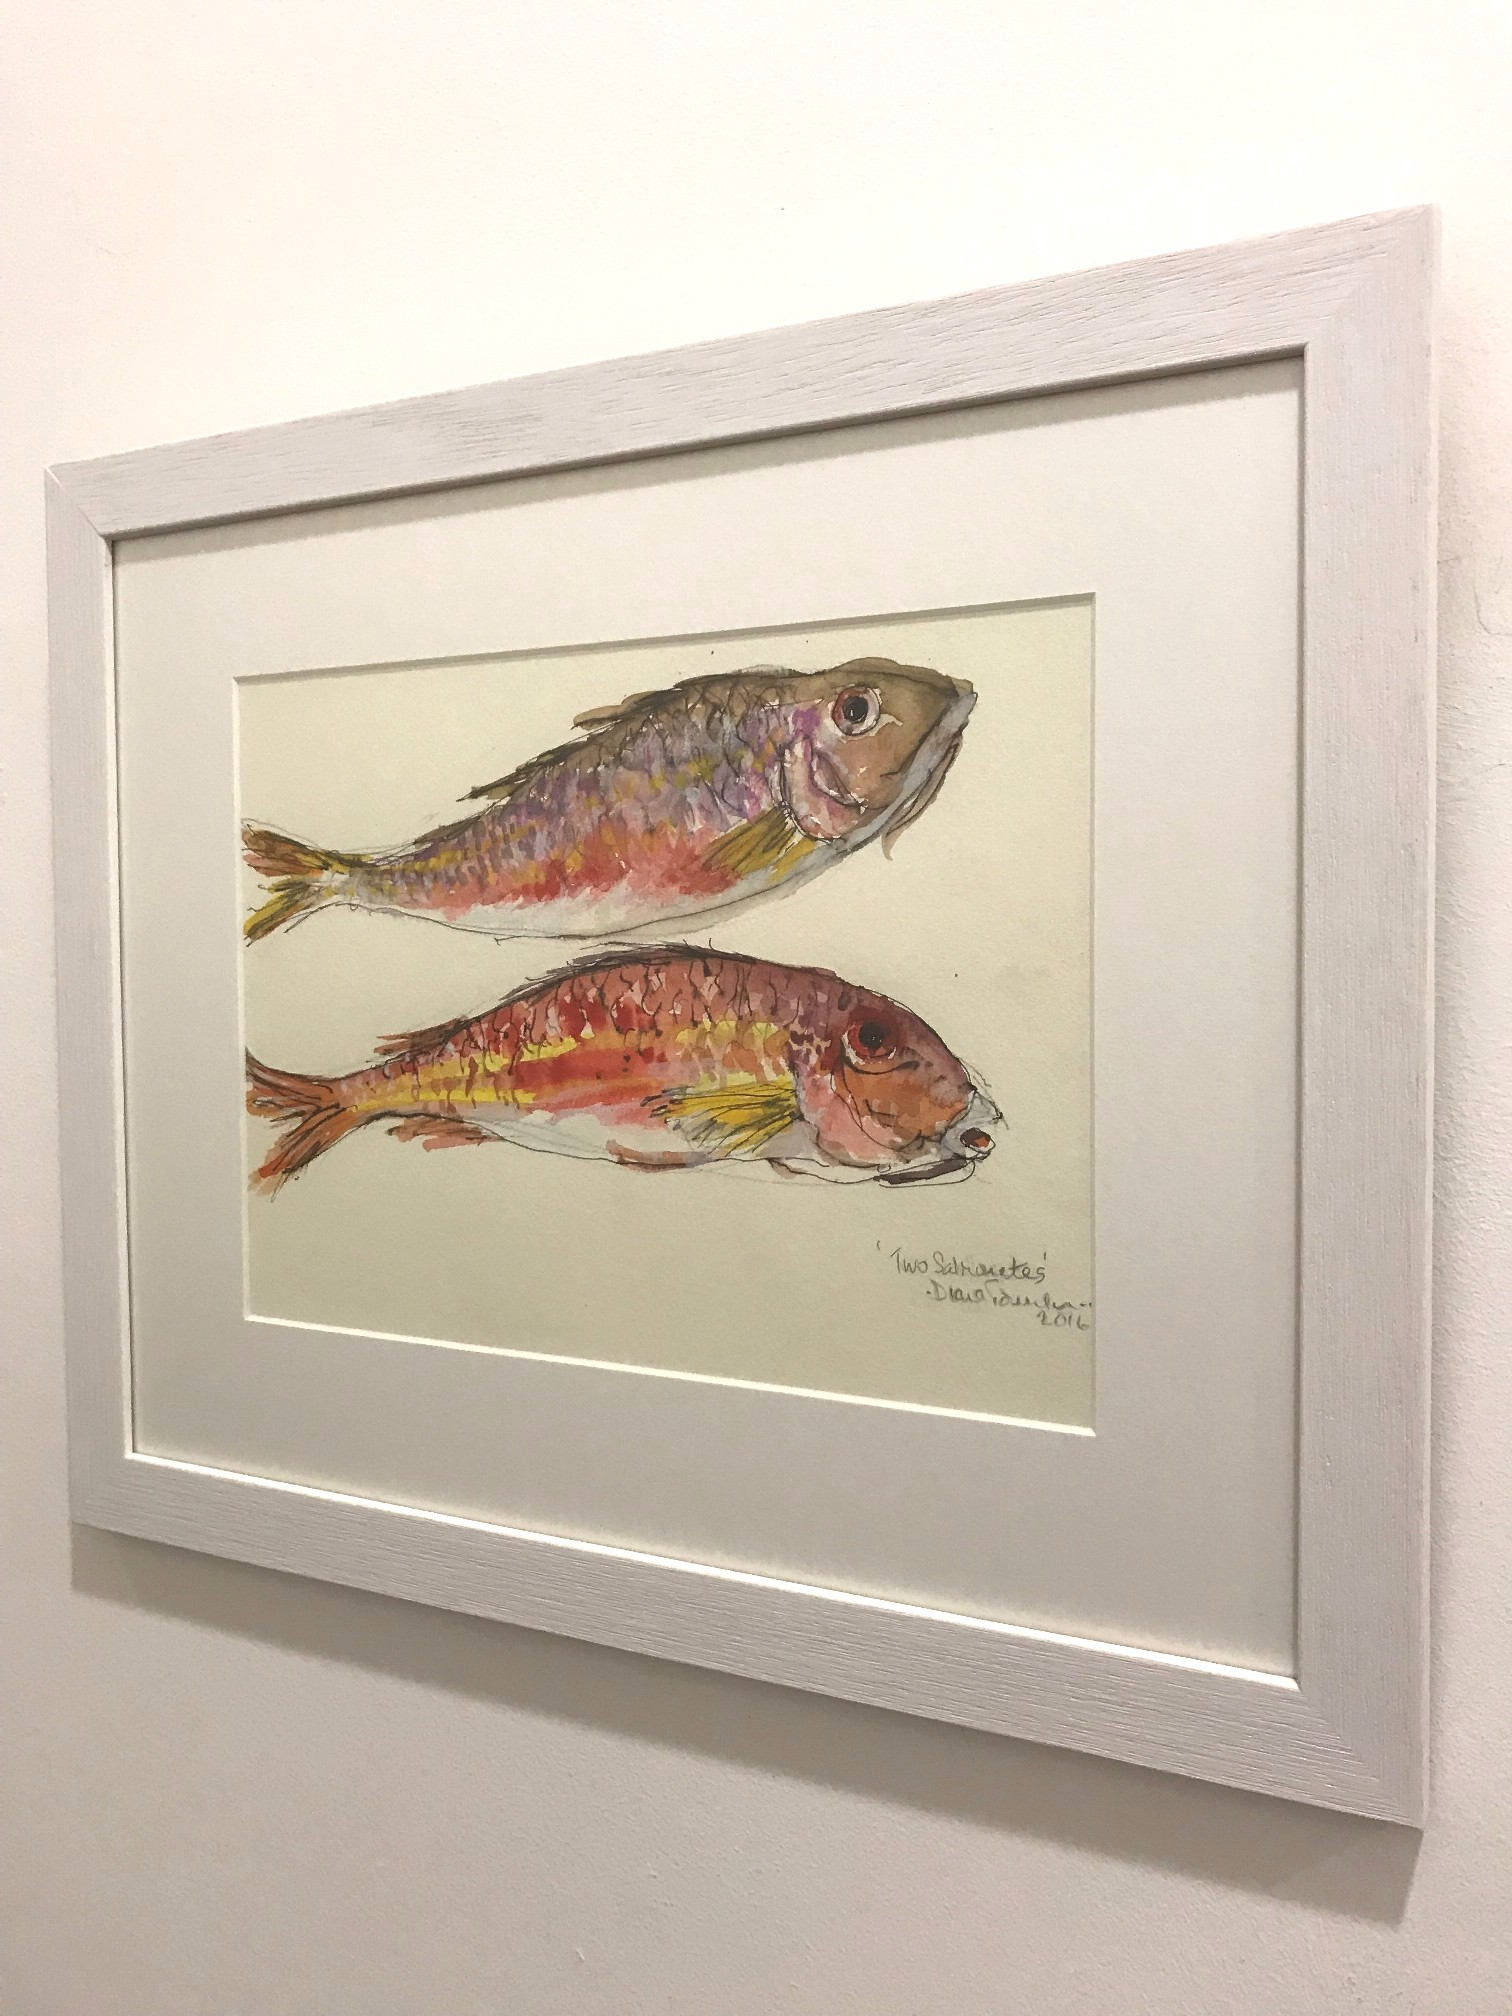 'Two Salmonete ' by artist Diana Tonnison